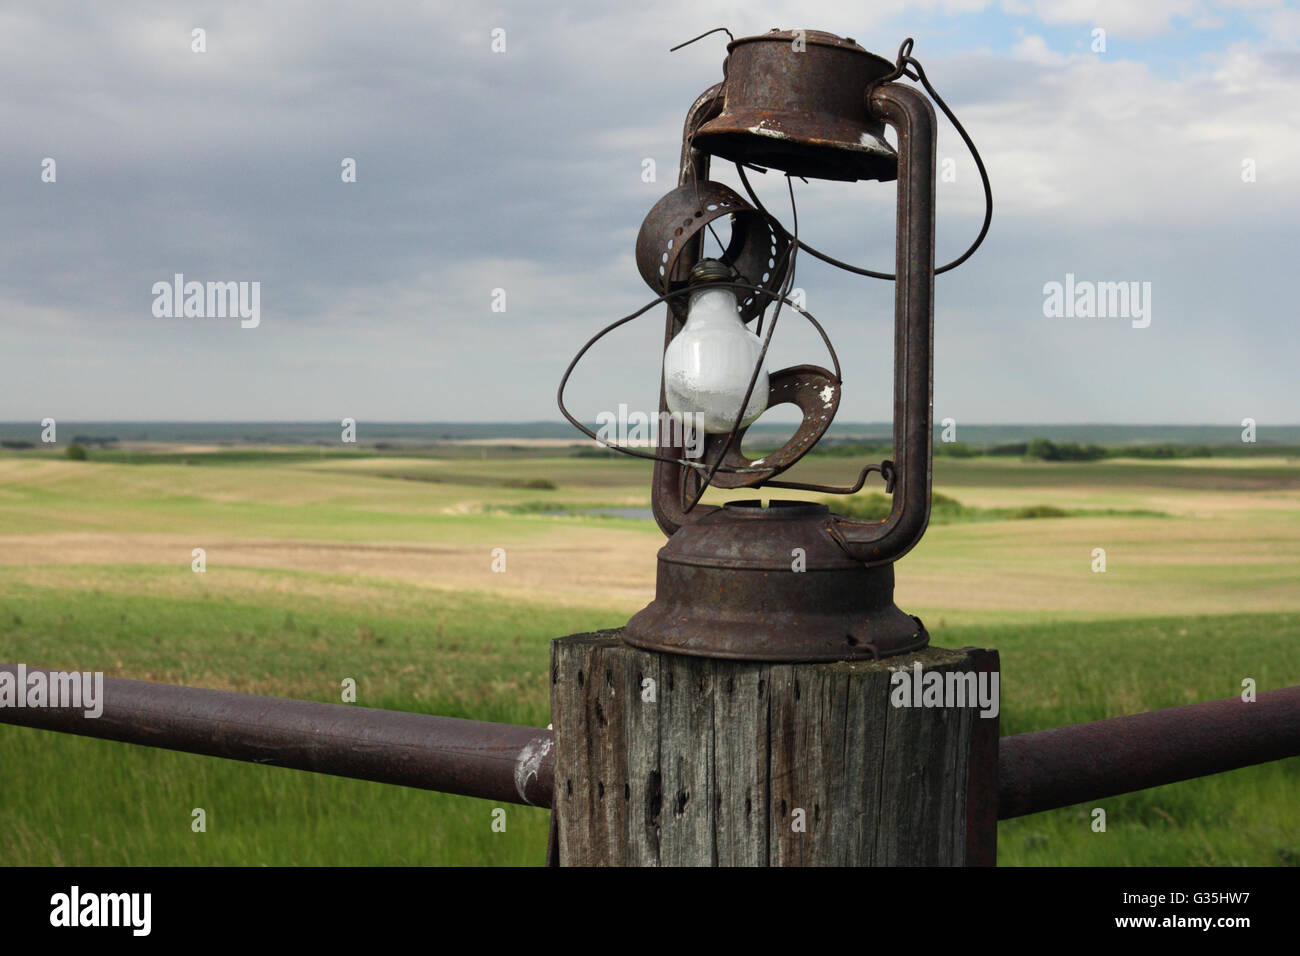 Antique lantern on a fence post on a farm in Alberta, Canada. - Stock Image